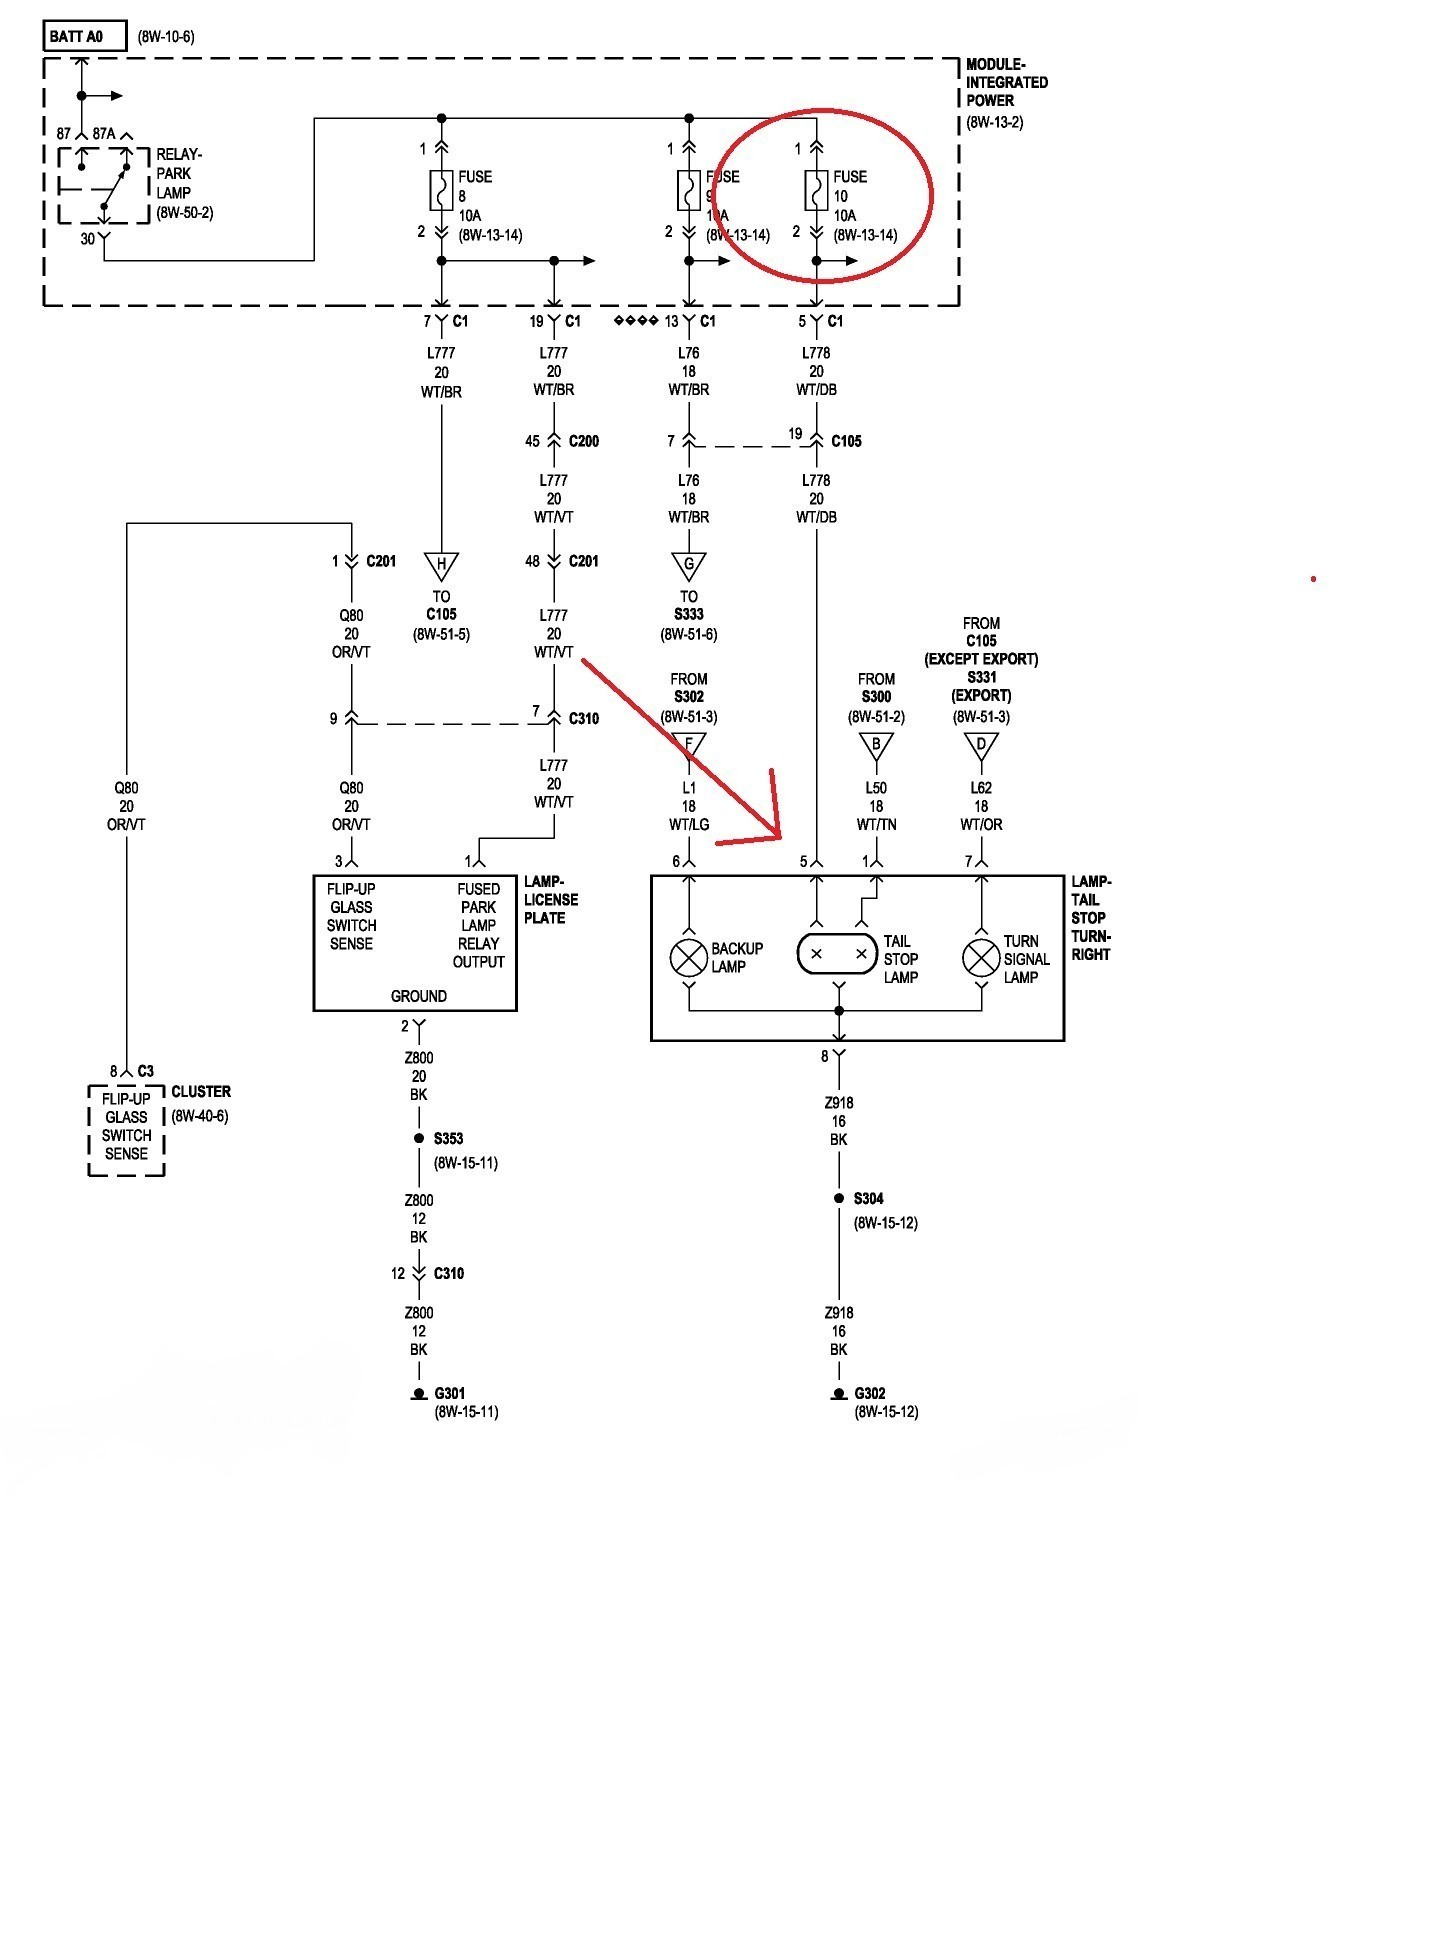 DIAGRAM] Jeep Liberty 2005 Wiring Diagram FULL Version HD Quality Wiring  Diagram - REALAUTOCARS.HISTOWEB.FRhistoweb.fr